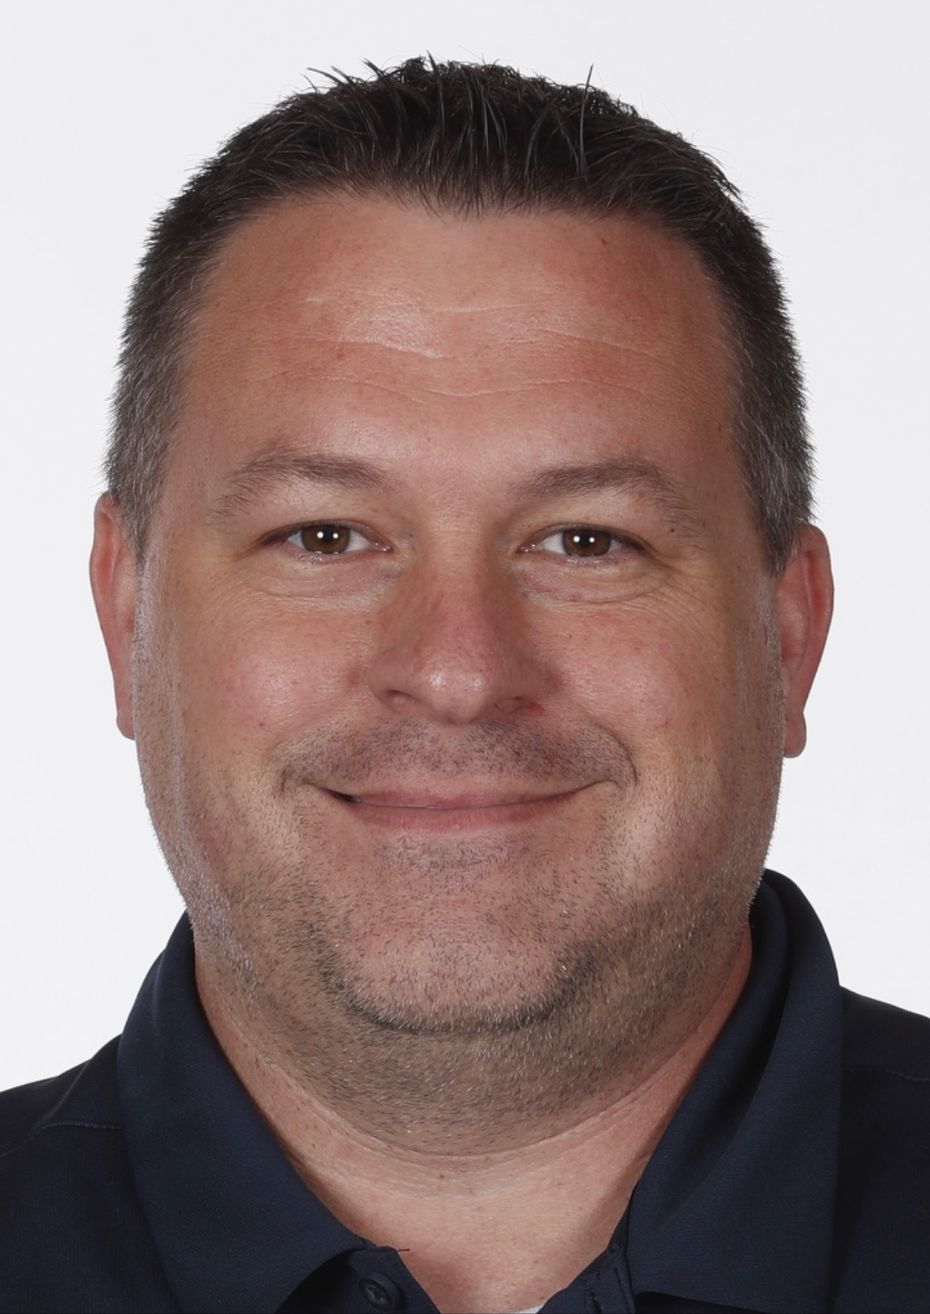 Mavericks equipment manager Kory Johnson, who is in his second year with Mavericks and his 20th NBA season. He previously worked for Pelicans franchise.